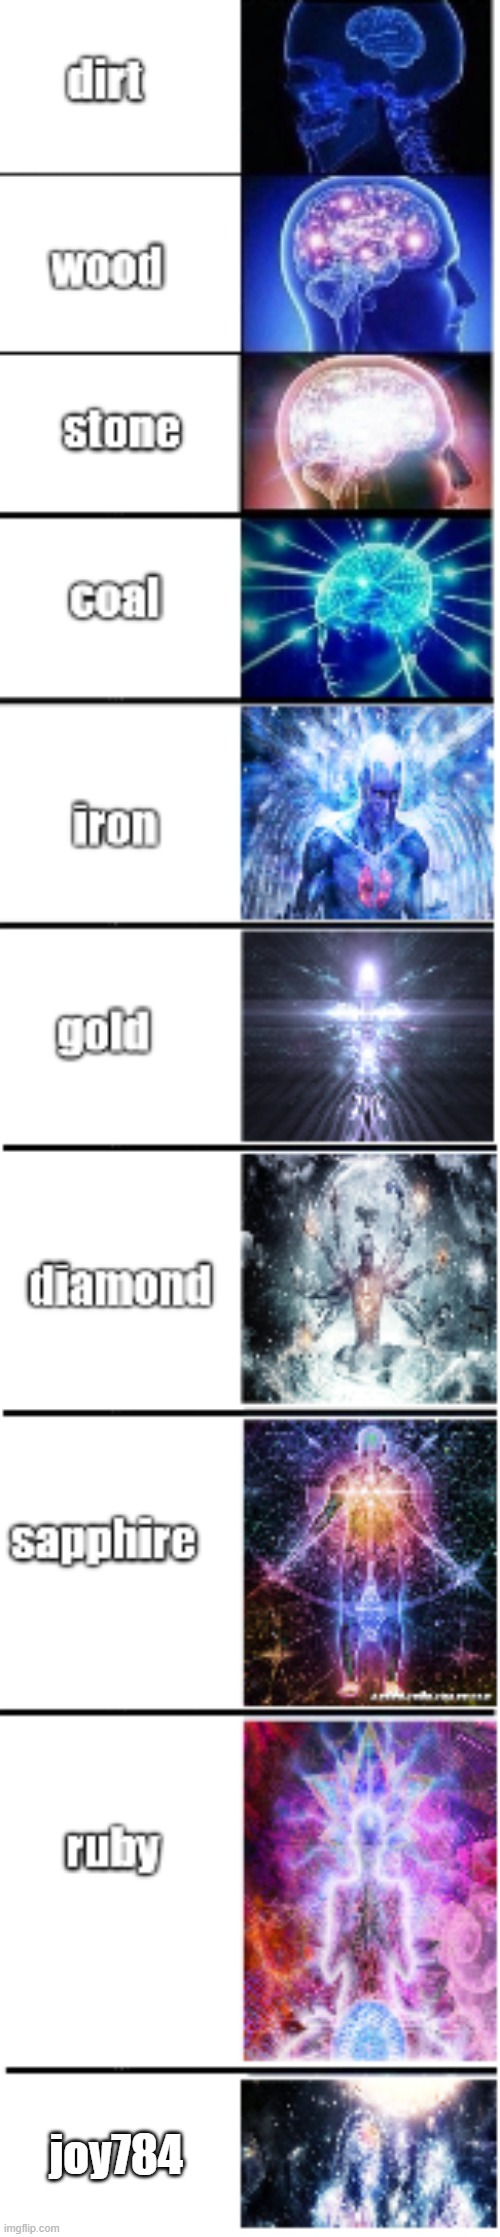 most PRECIOUS gem template |  joy784 | image tagged in most precious gem | made w/ Imgflip meme maker